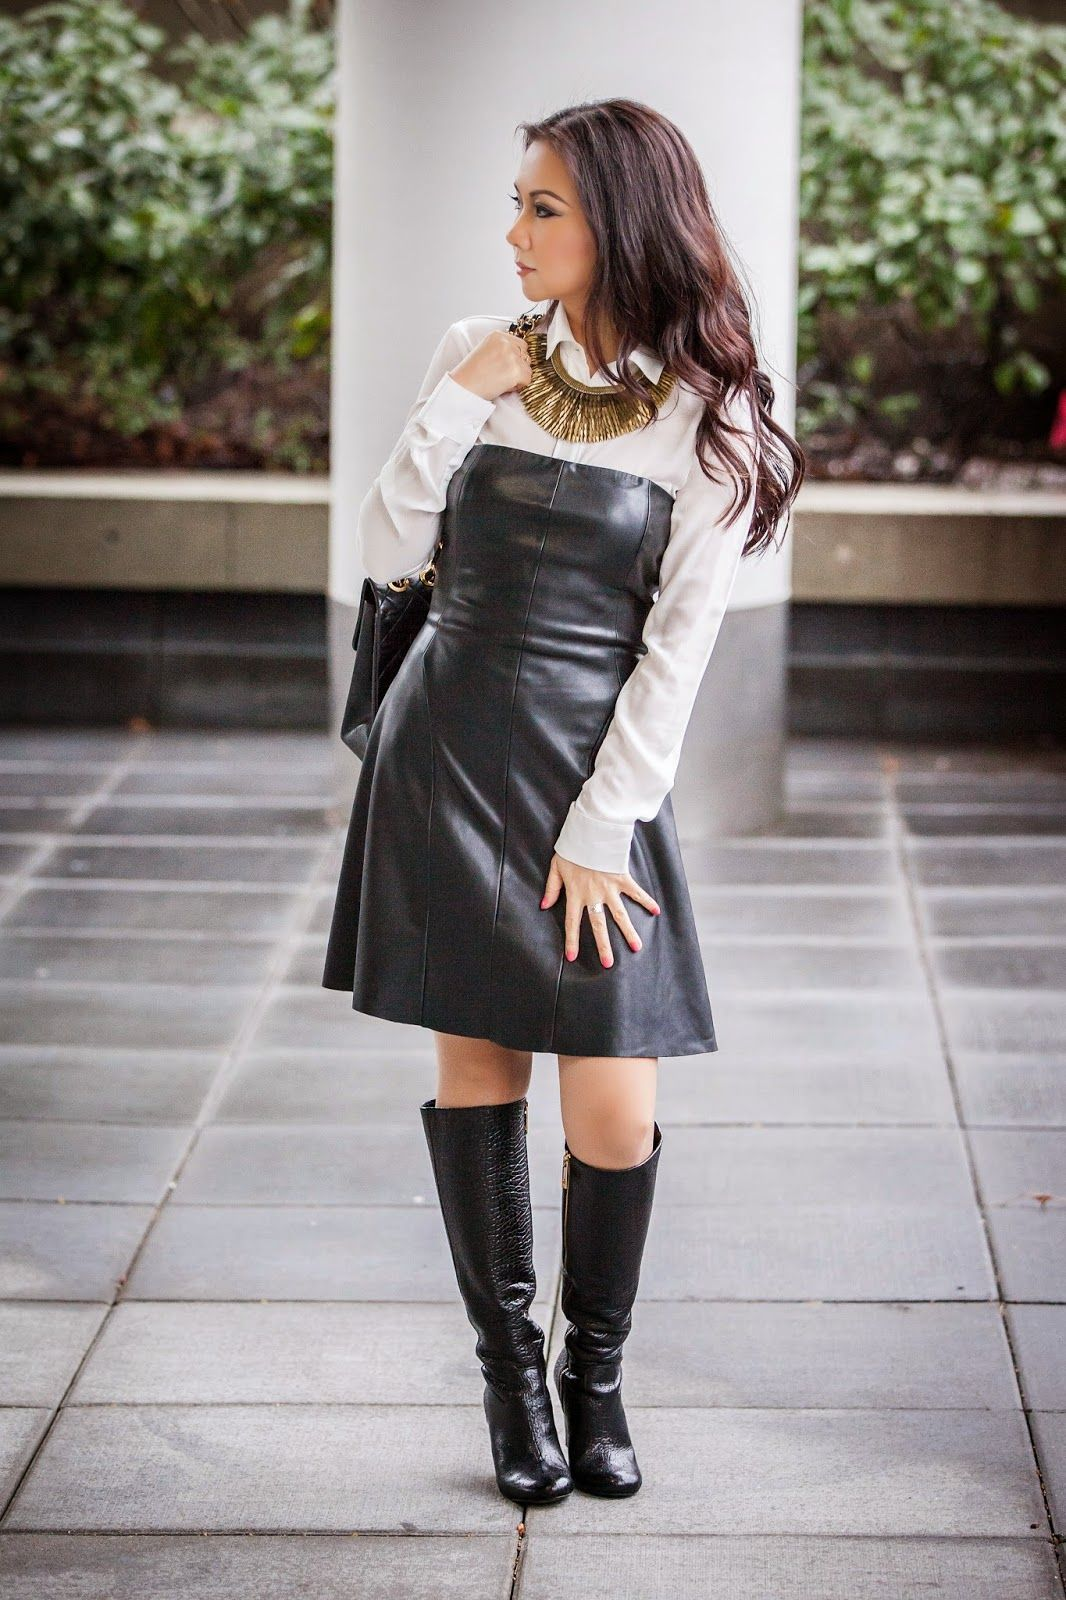 Cute black leather dress outfit with white shirt and knee ...